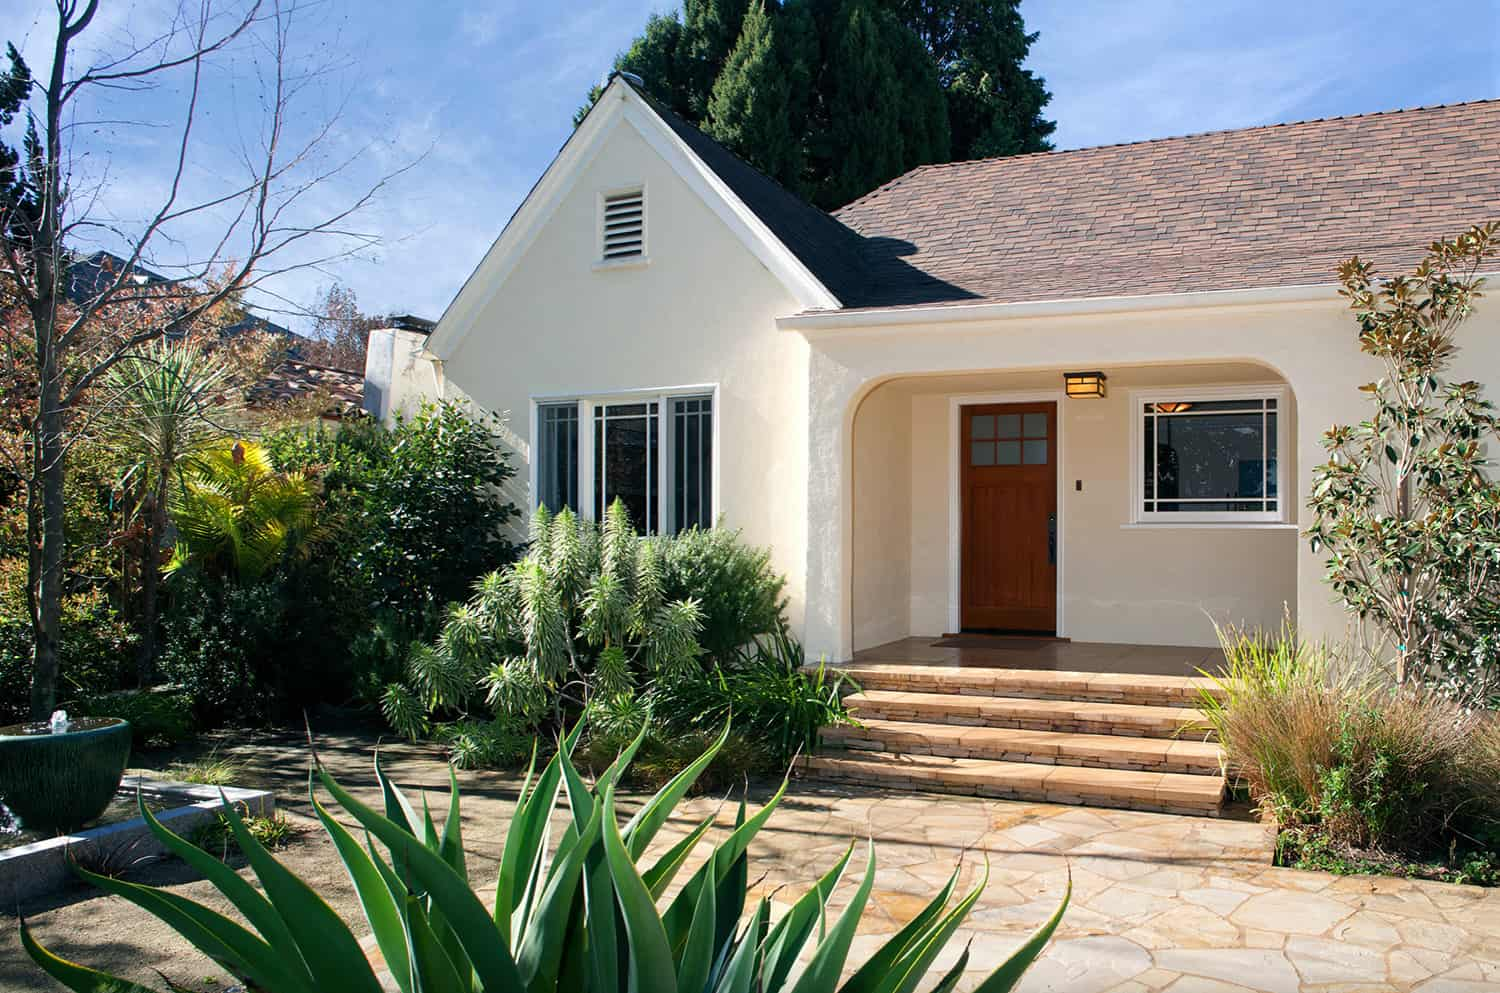 california-bungalow-style-home-exterior-with-a-craftsman-door